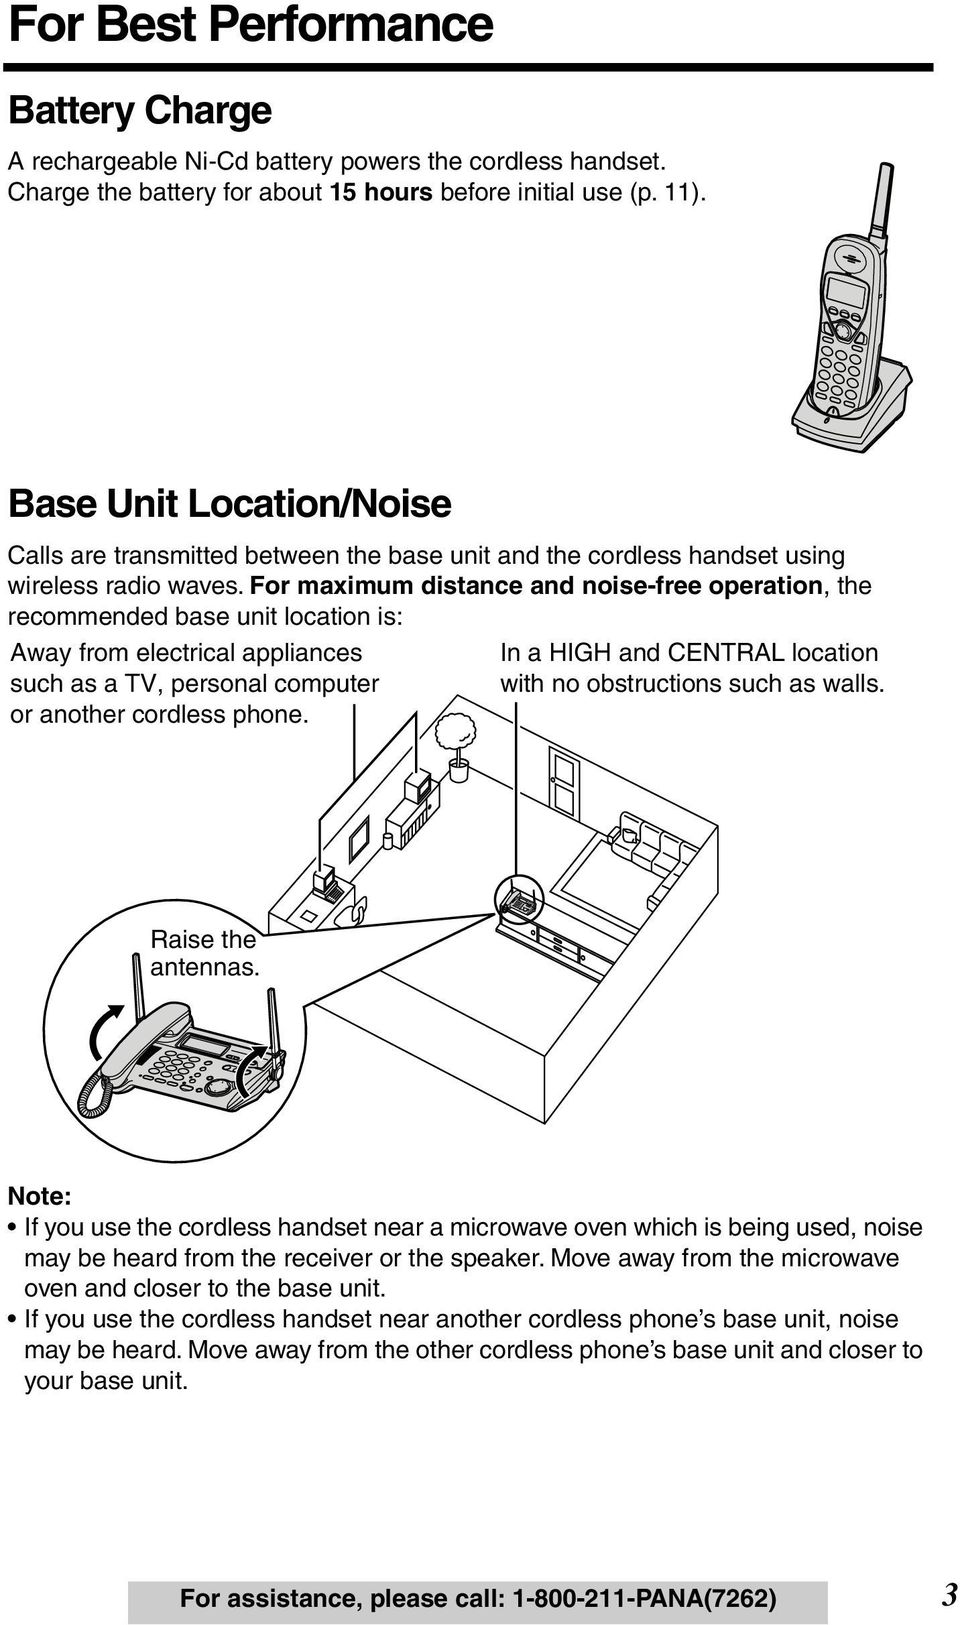 For maximum distance and noise-free operation, the recommended base unit location is: Away from electrical appliances such as a TV, personal computer or another cordless phone.